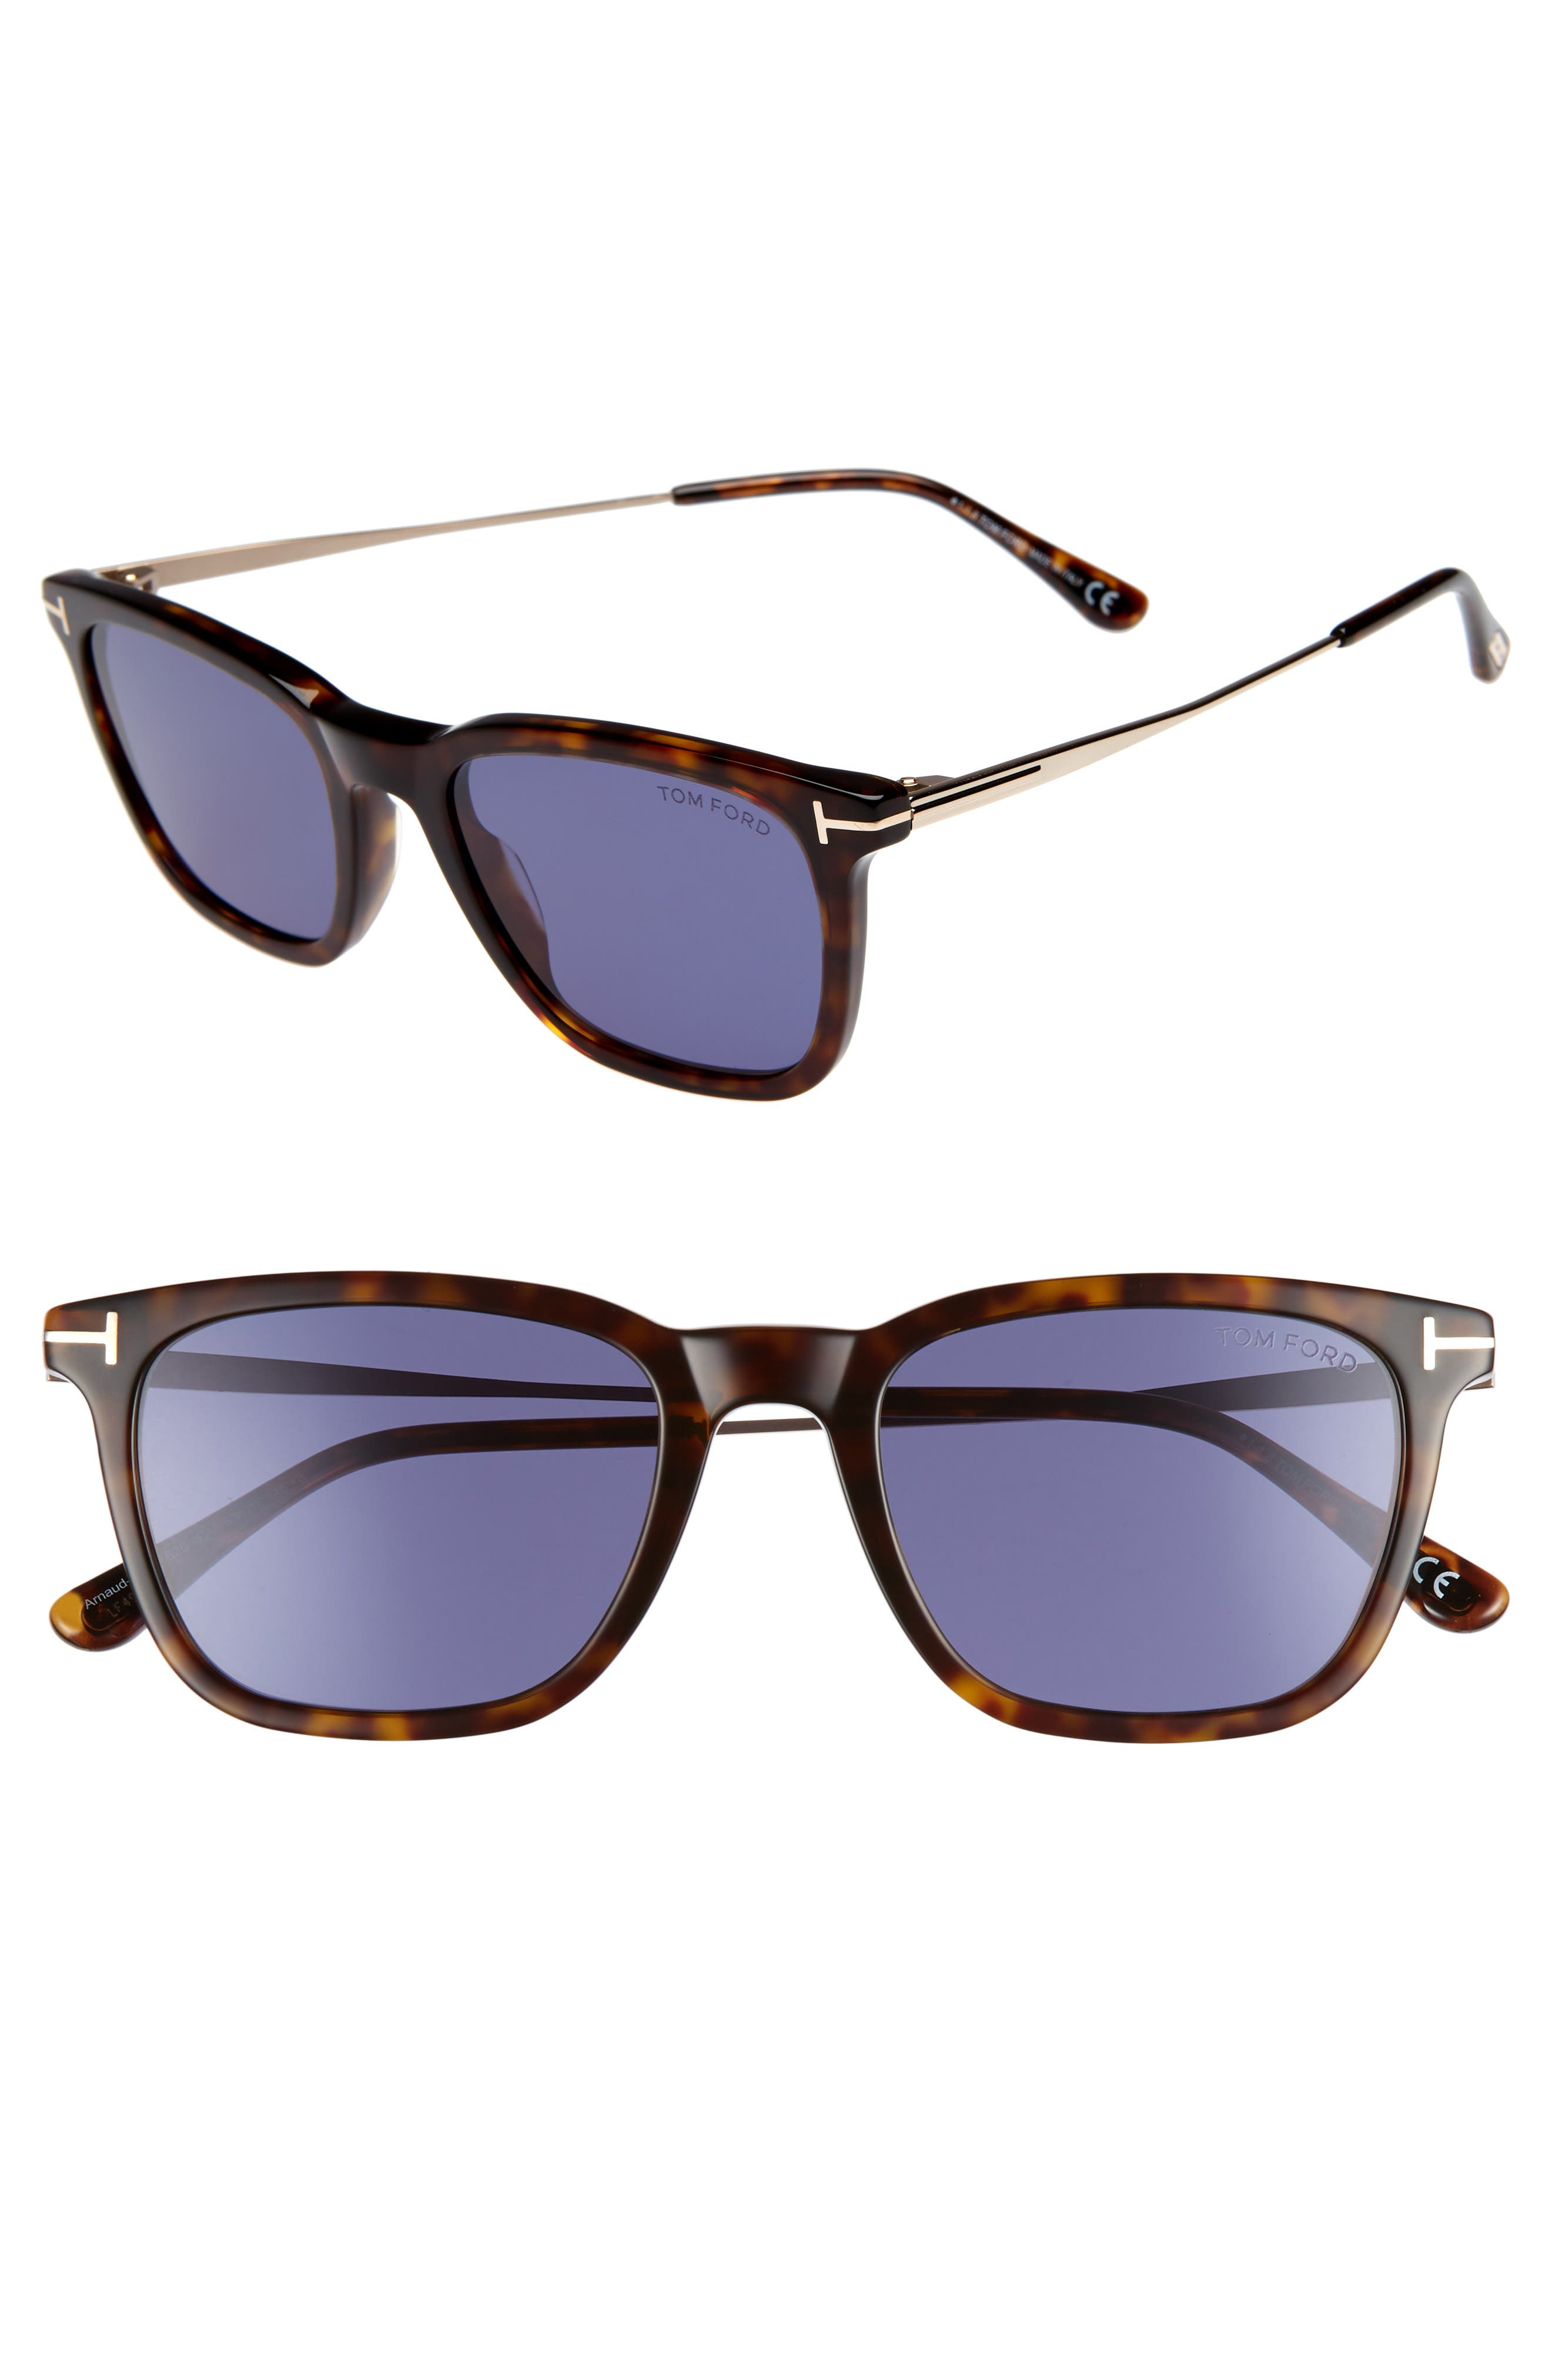 Tom Ford 5m Rectangle Sunglasses - Dark Havana/ Blue